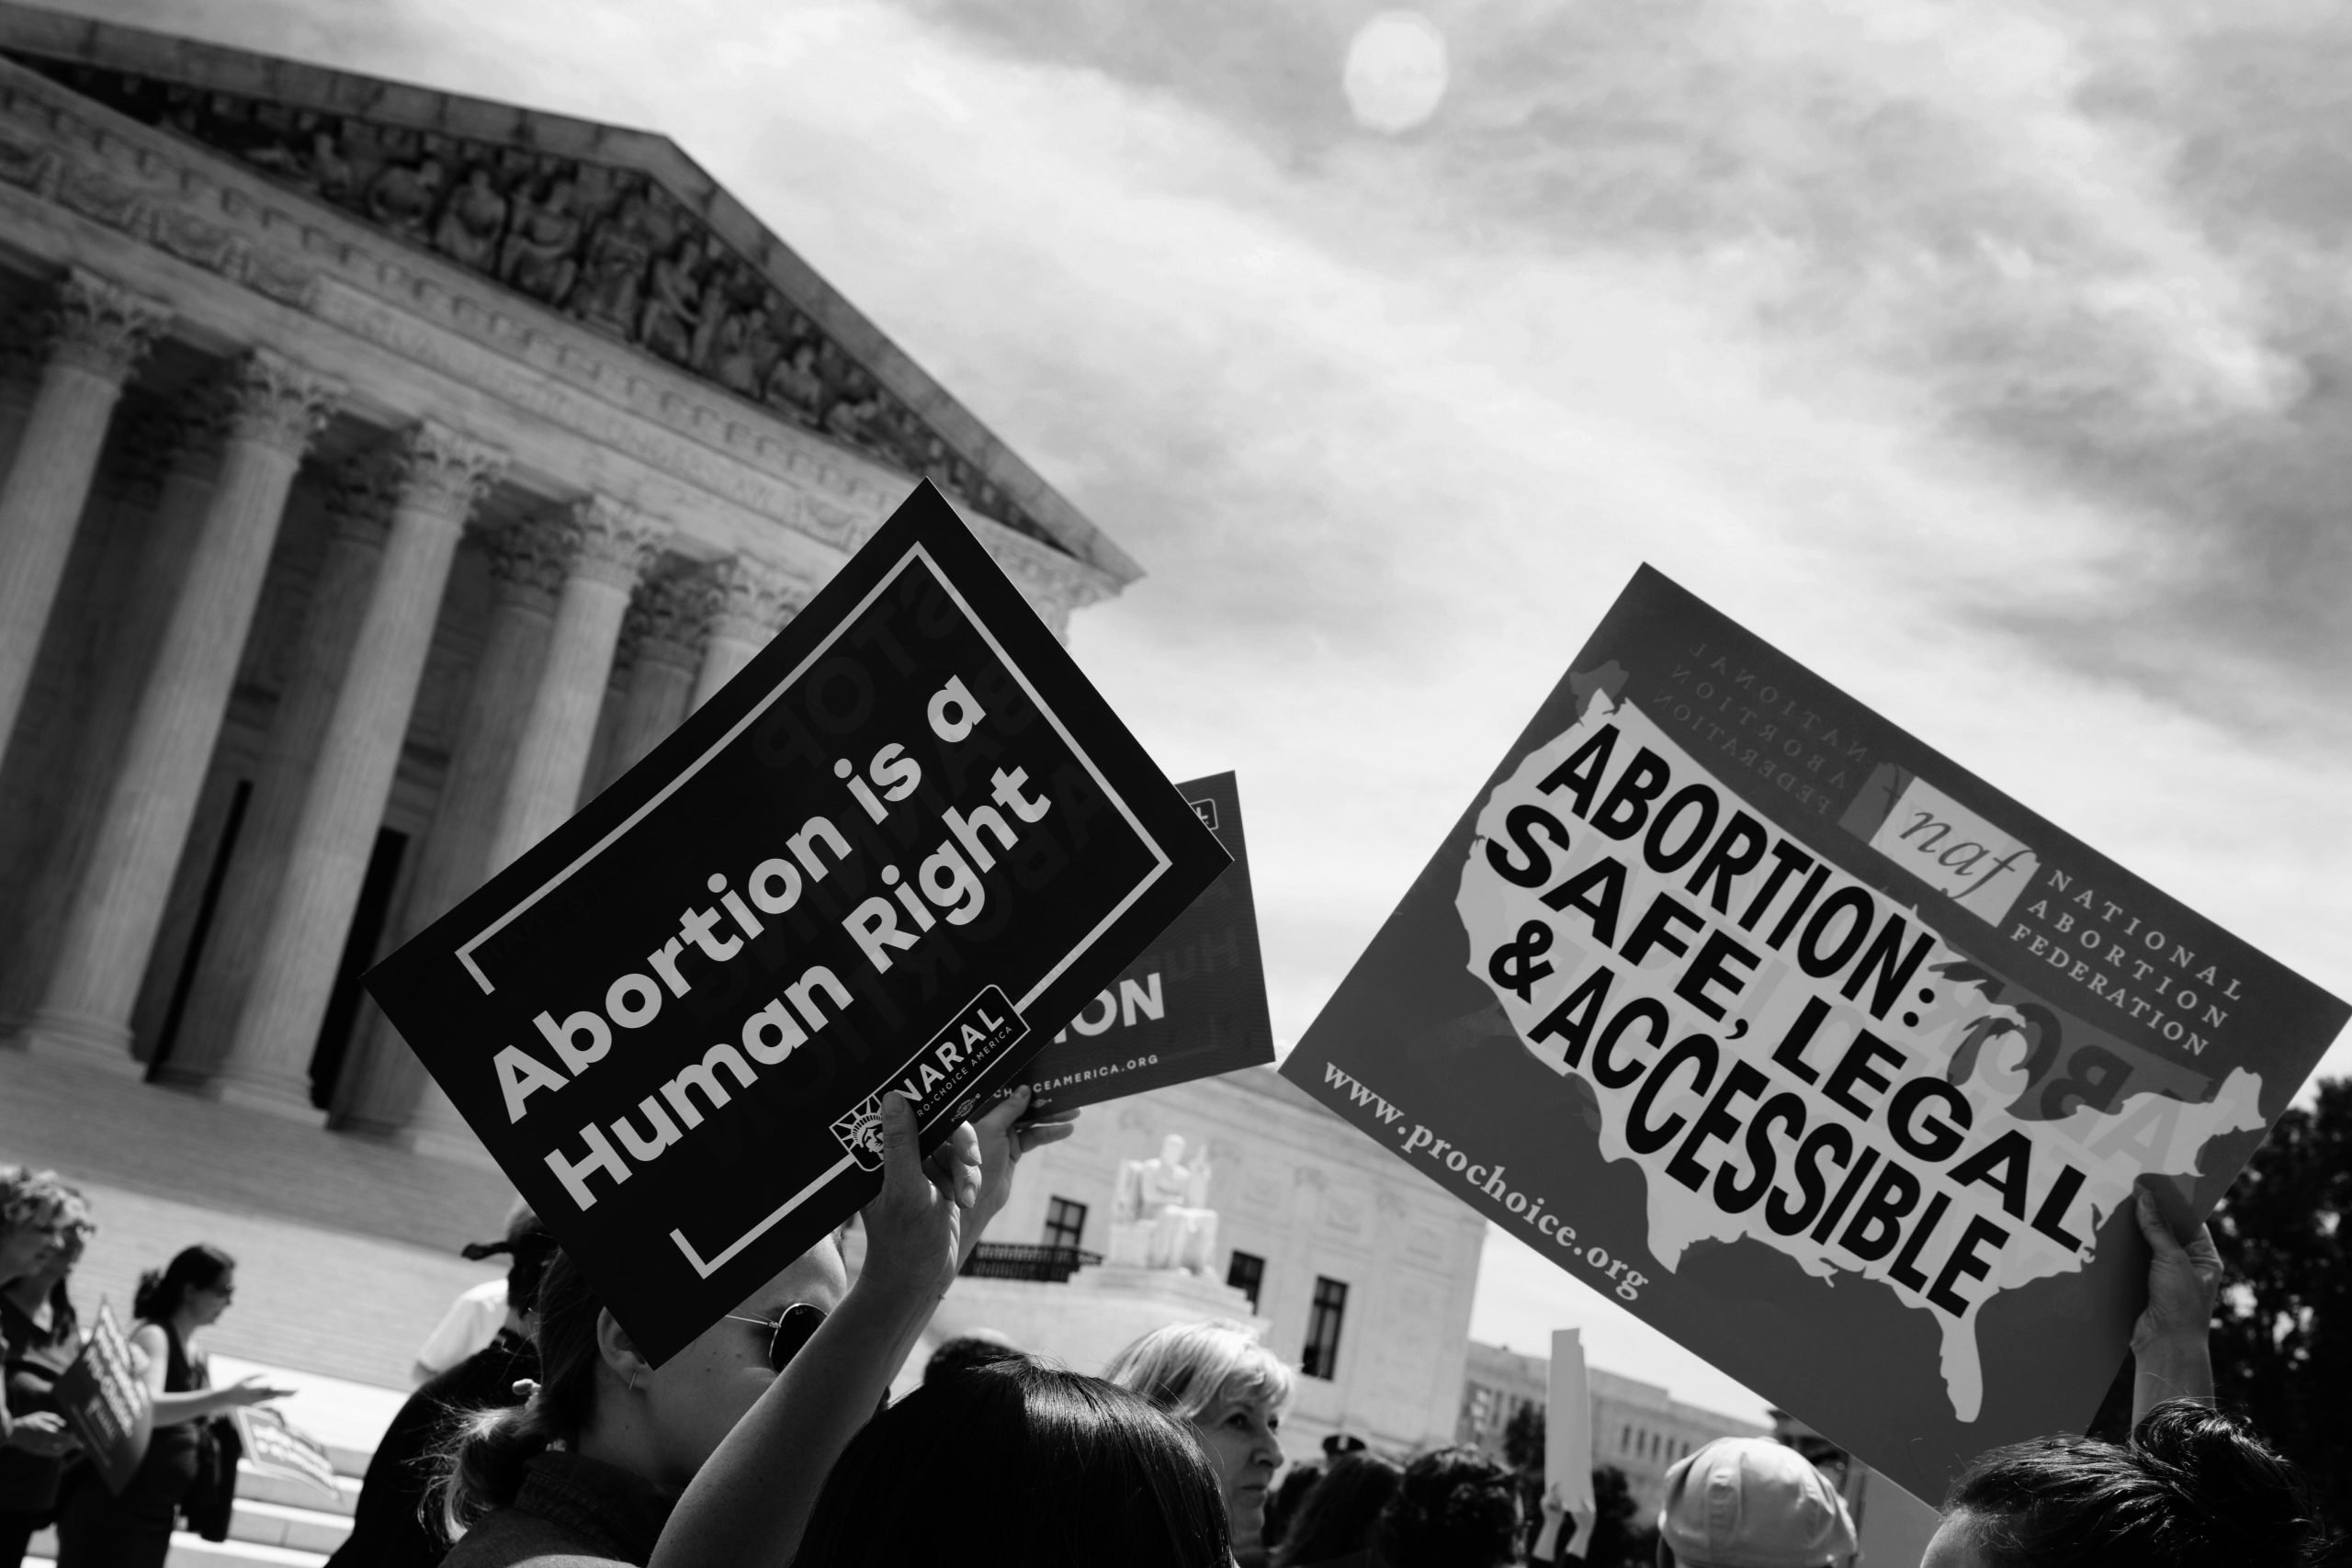 Abortion rights activists outside the U.S. Supreme Courton May 21, 2019, to protest against abortion laws passed across